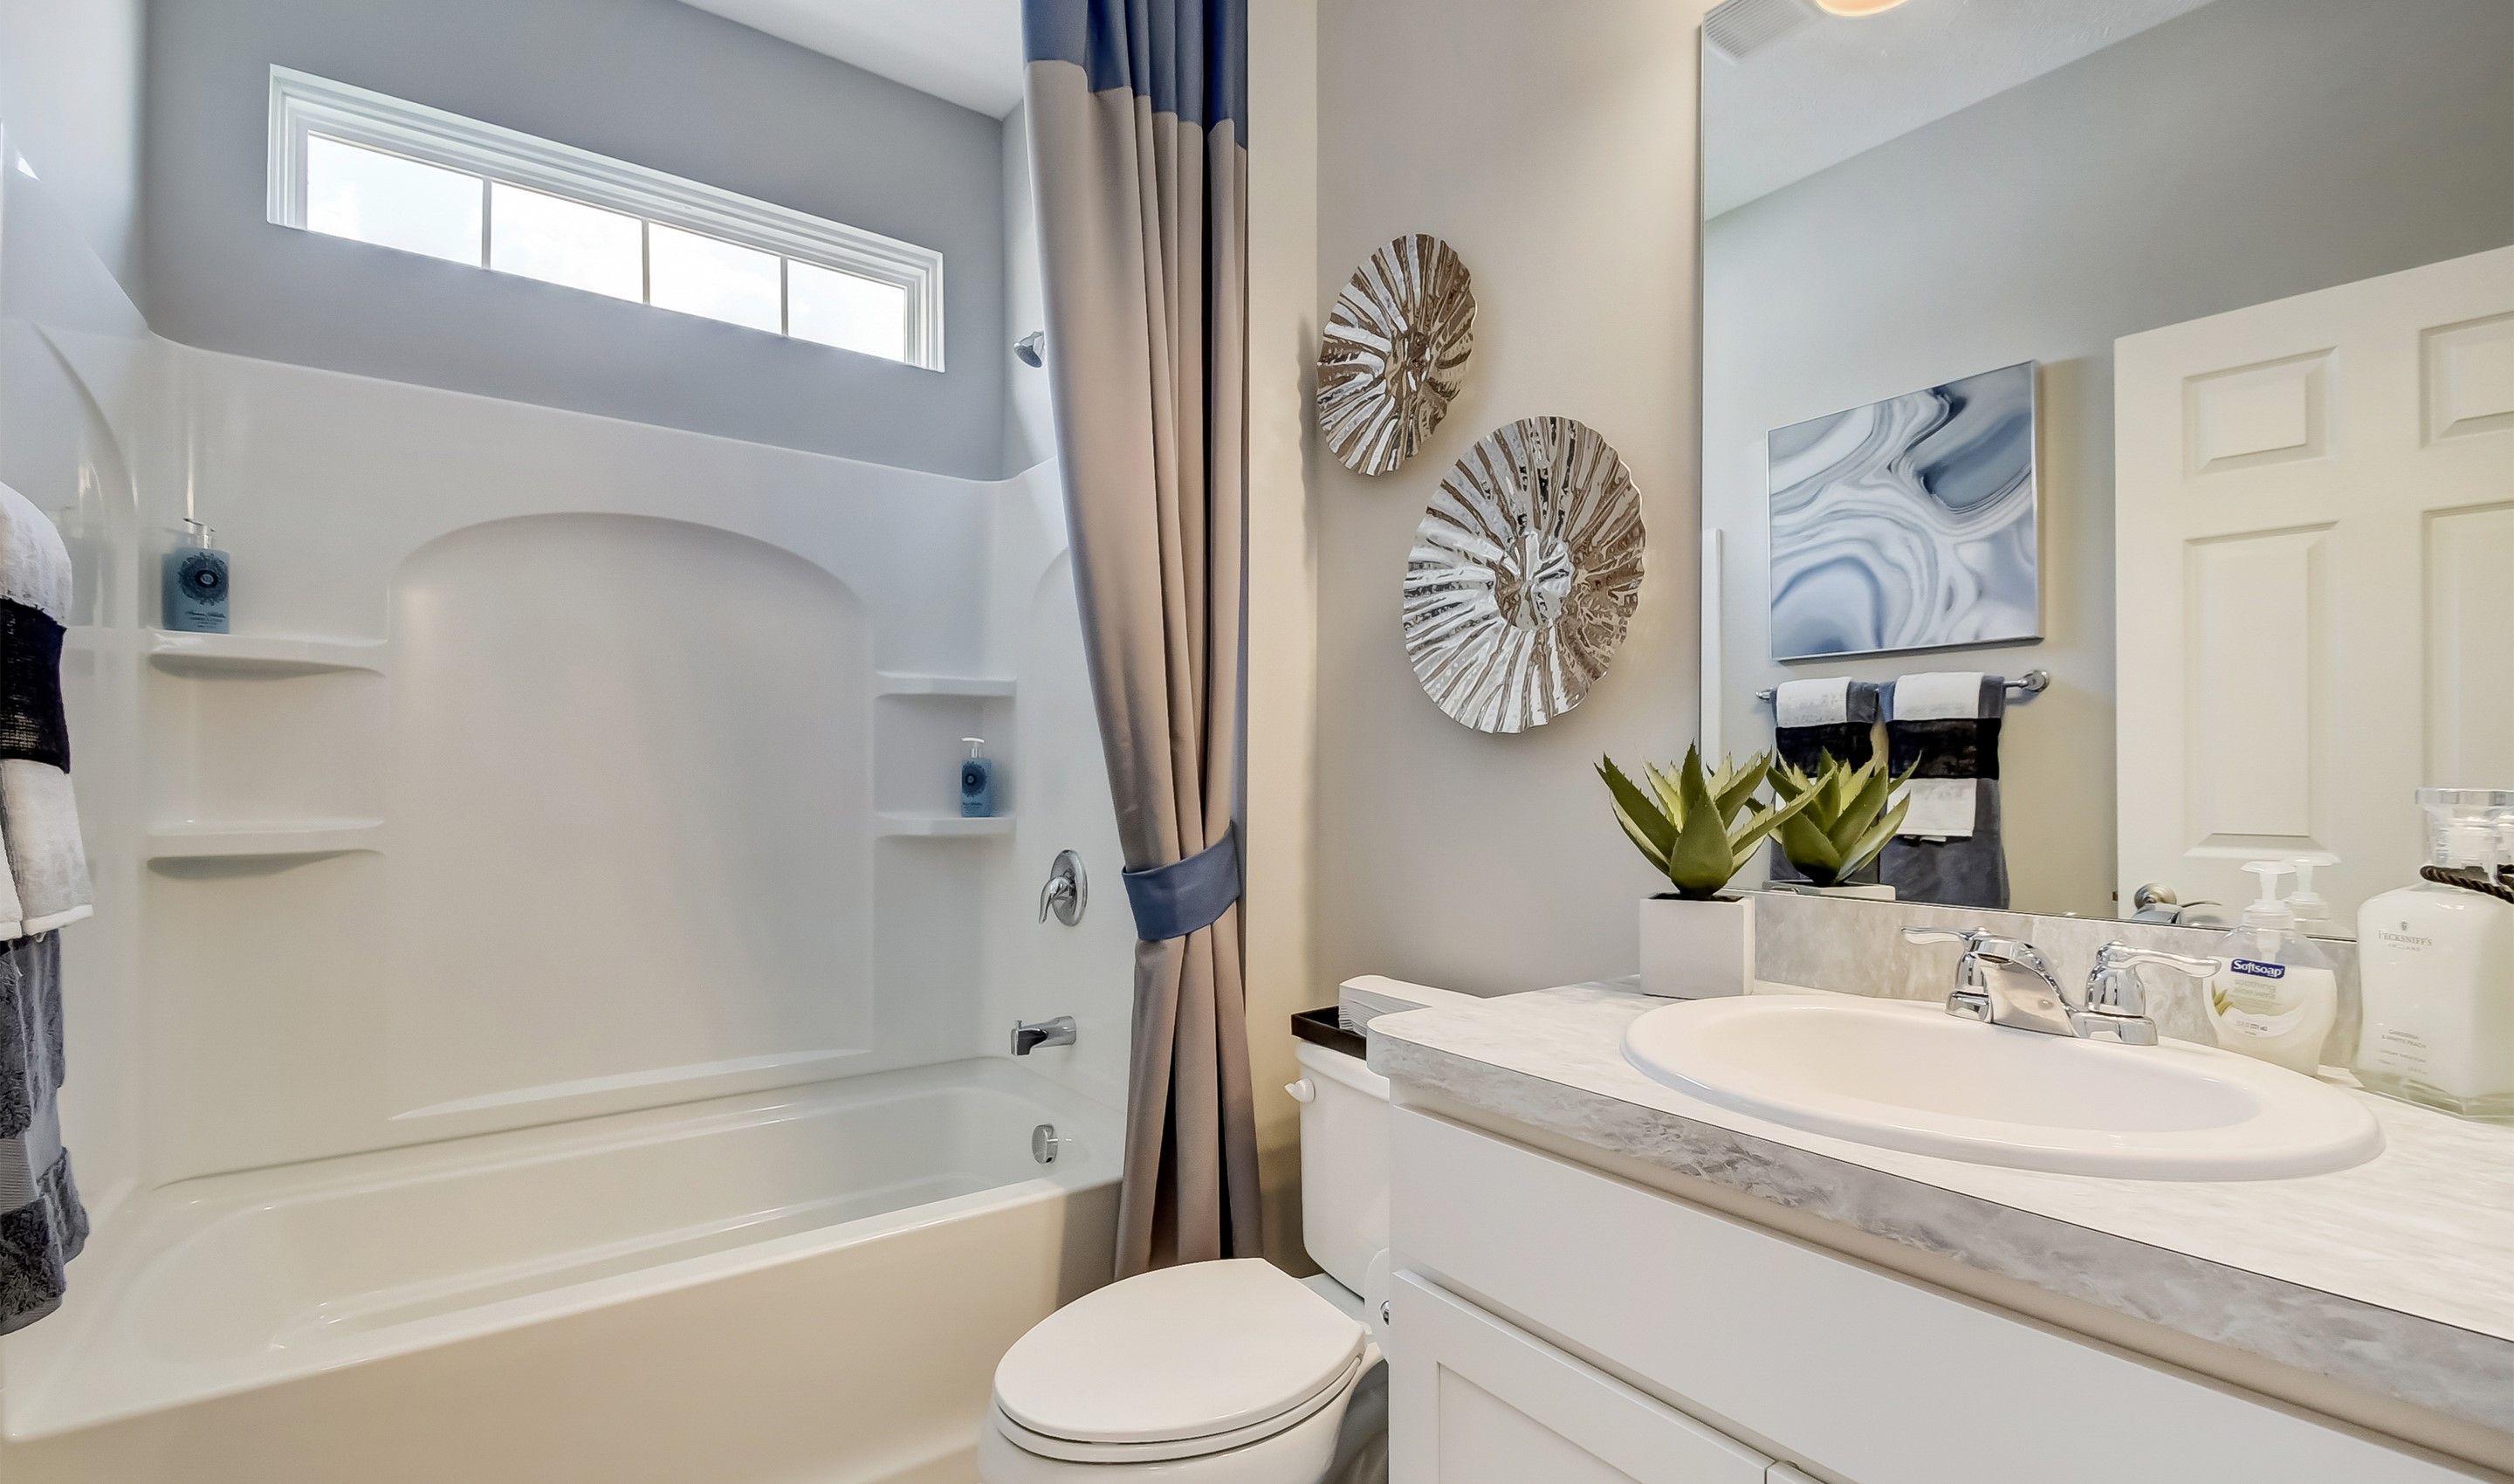 Bathroom featured in the Monterey II By K. Hovnanian's® Four Seasons in Cleveland, OH